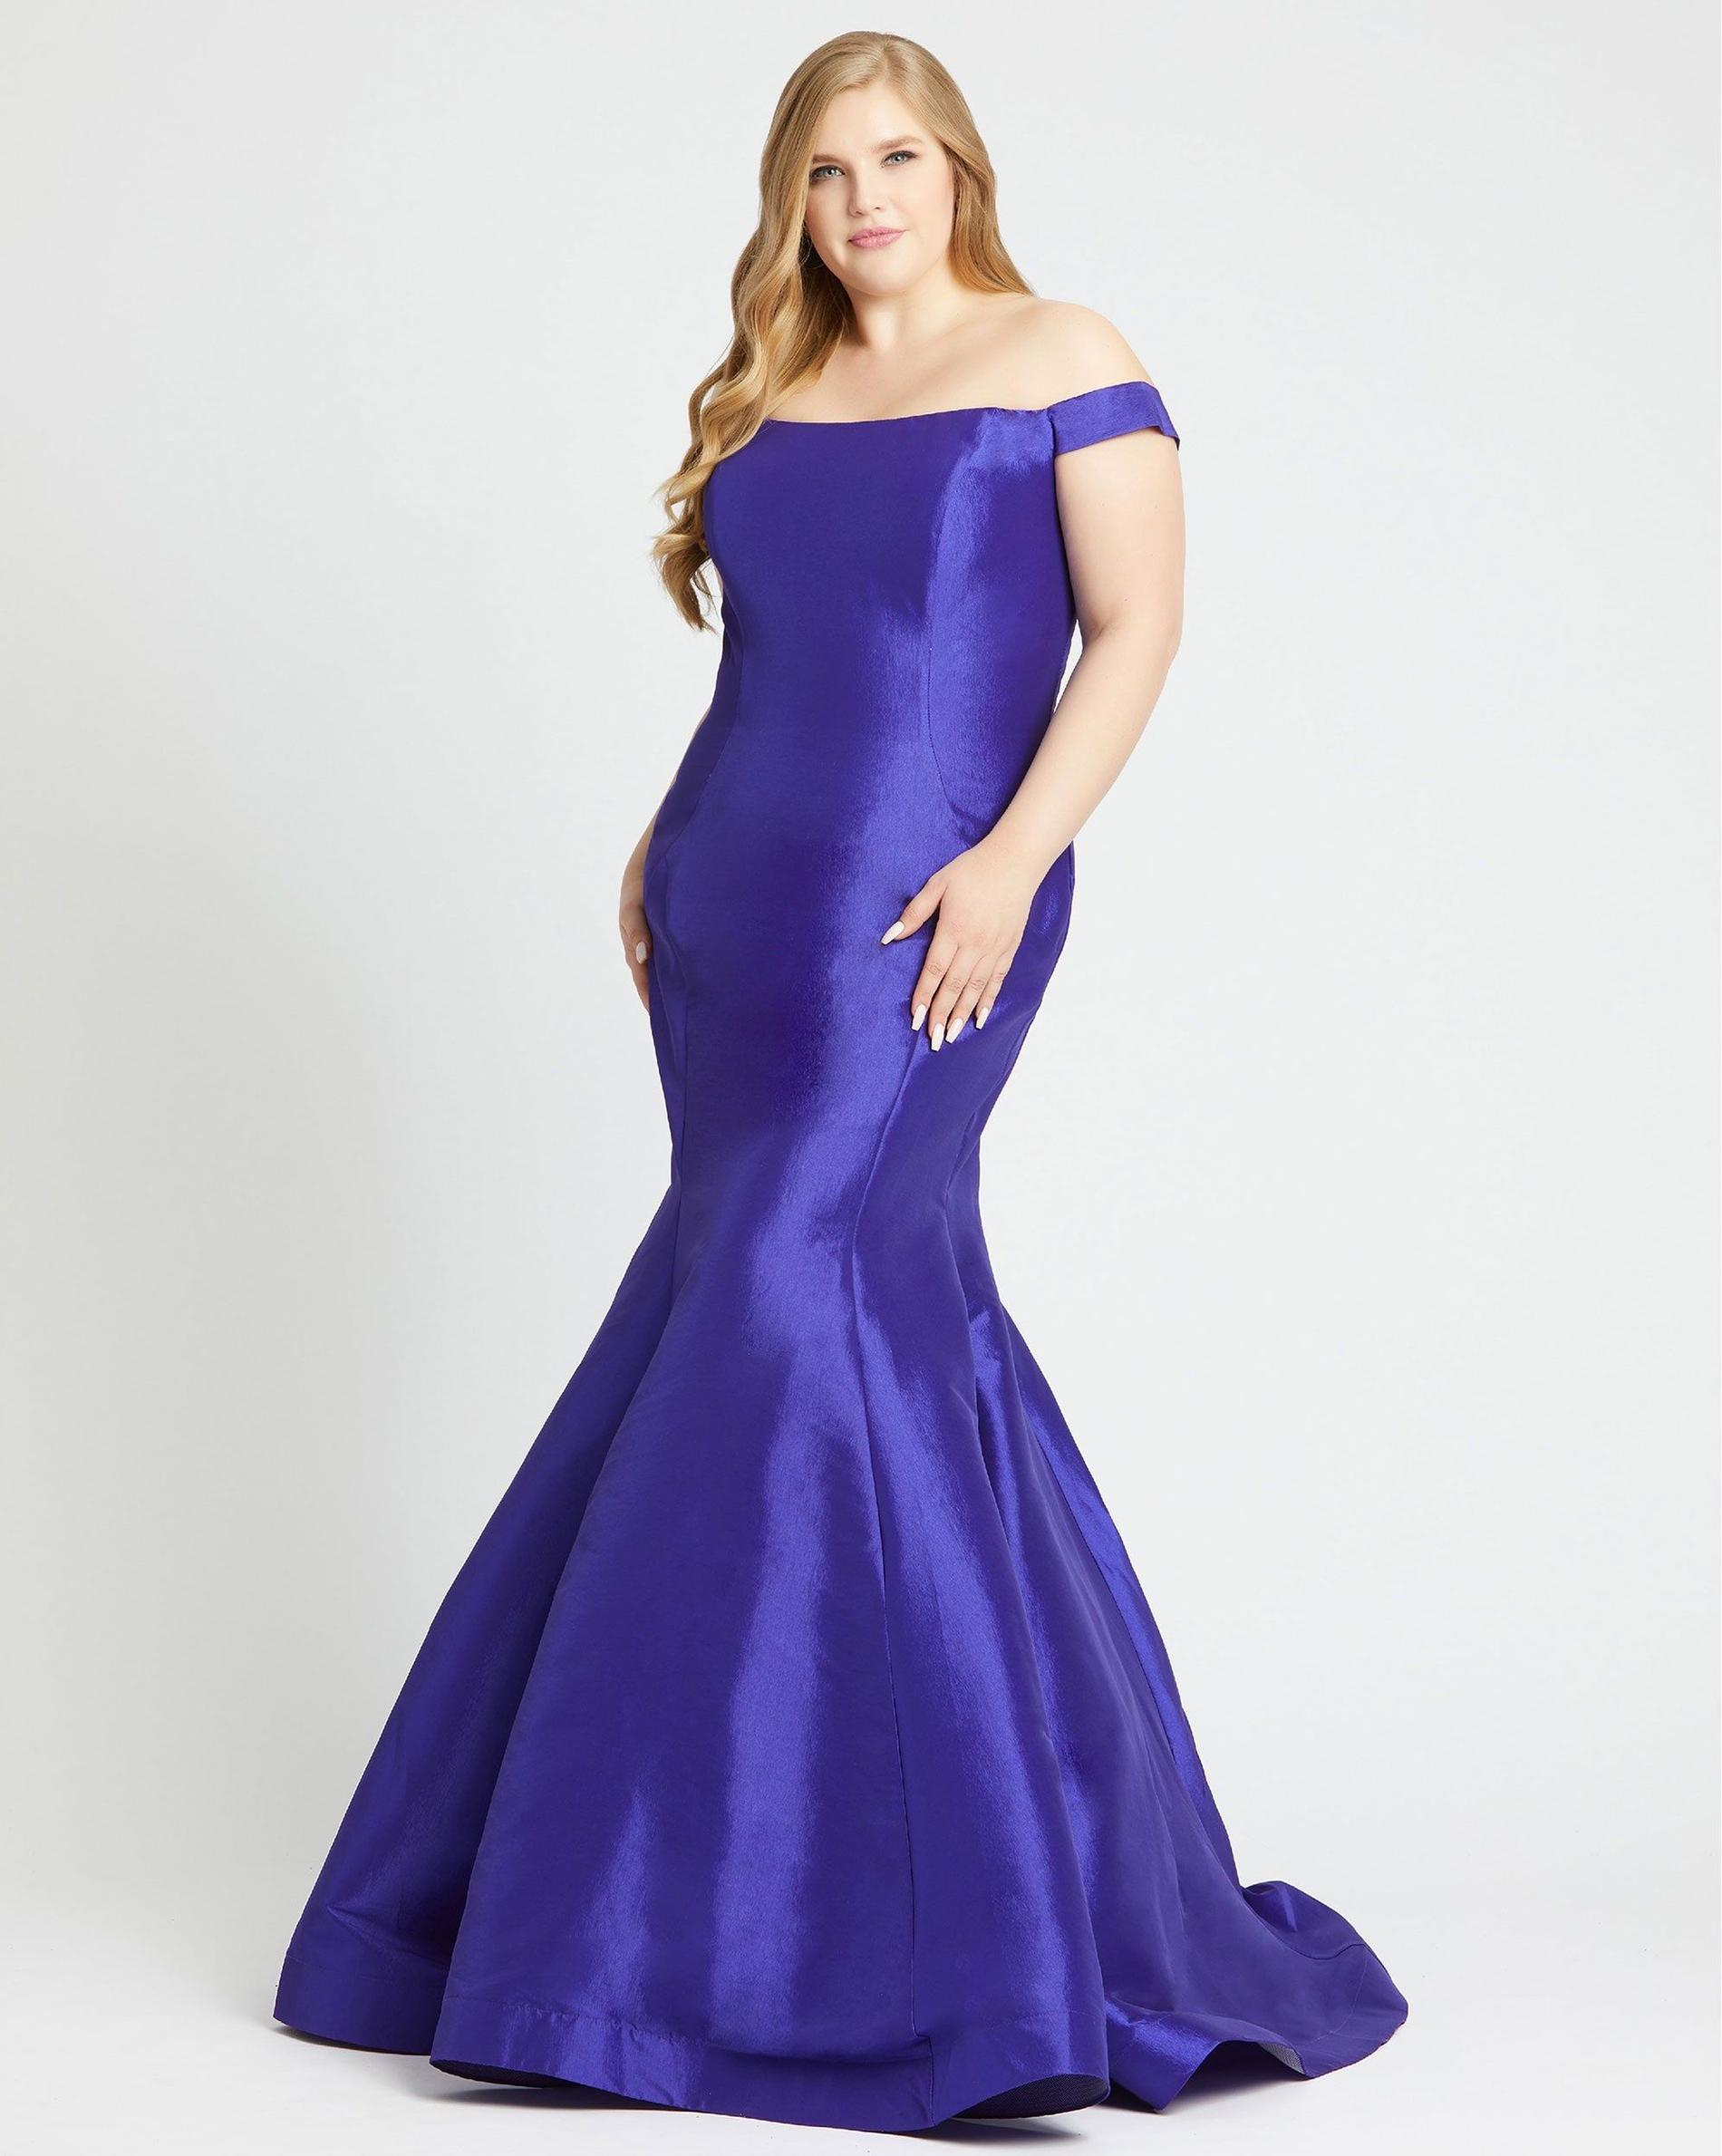 Style 66803 Mac Duggal Purple Size 28 Tall Height Wedding Guest Mermaid Dress on Queenly